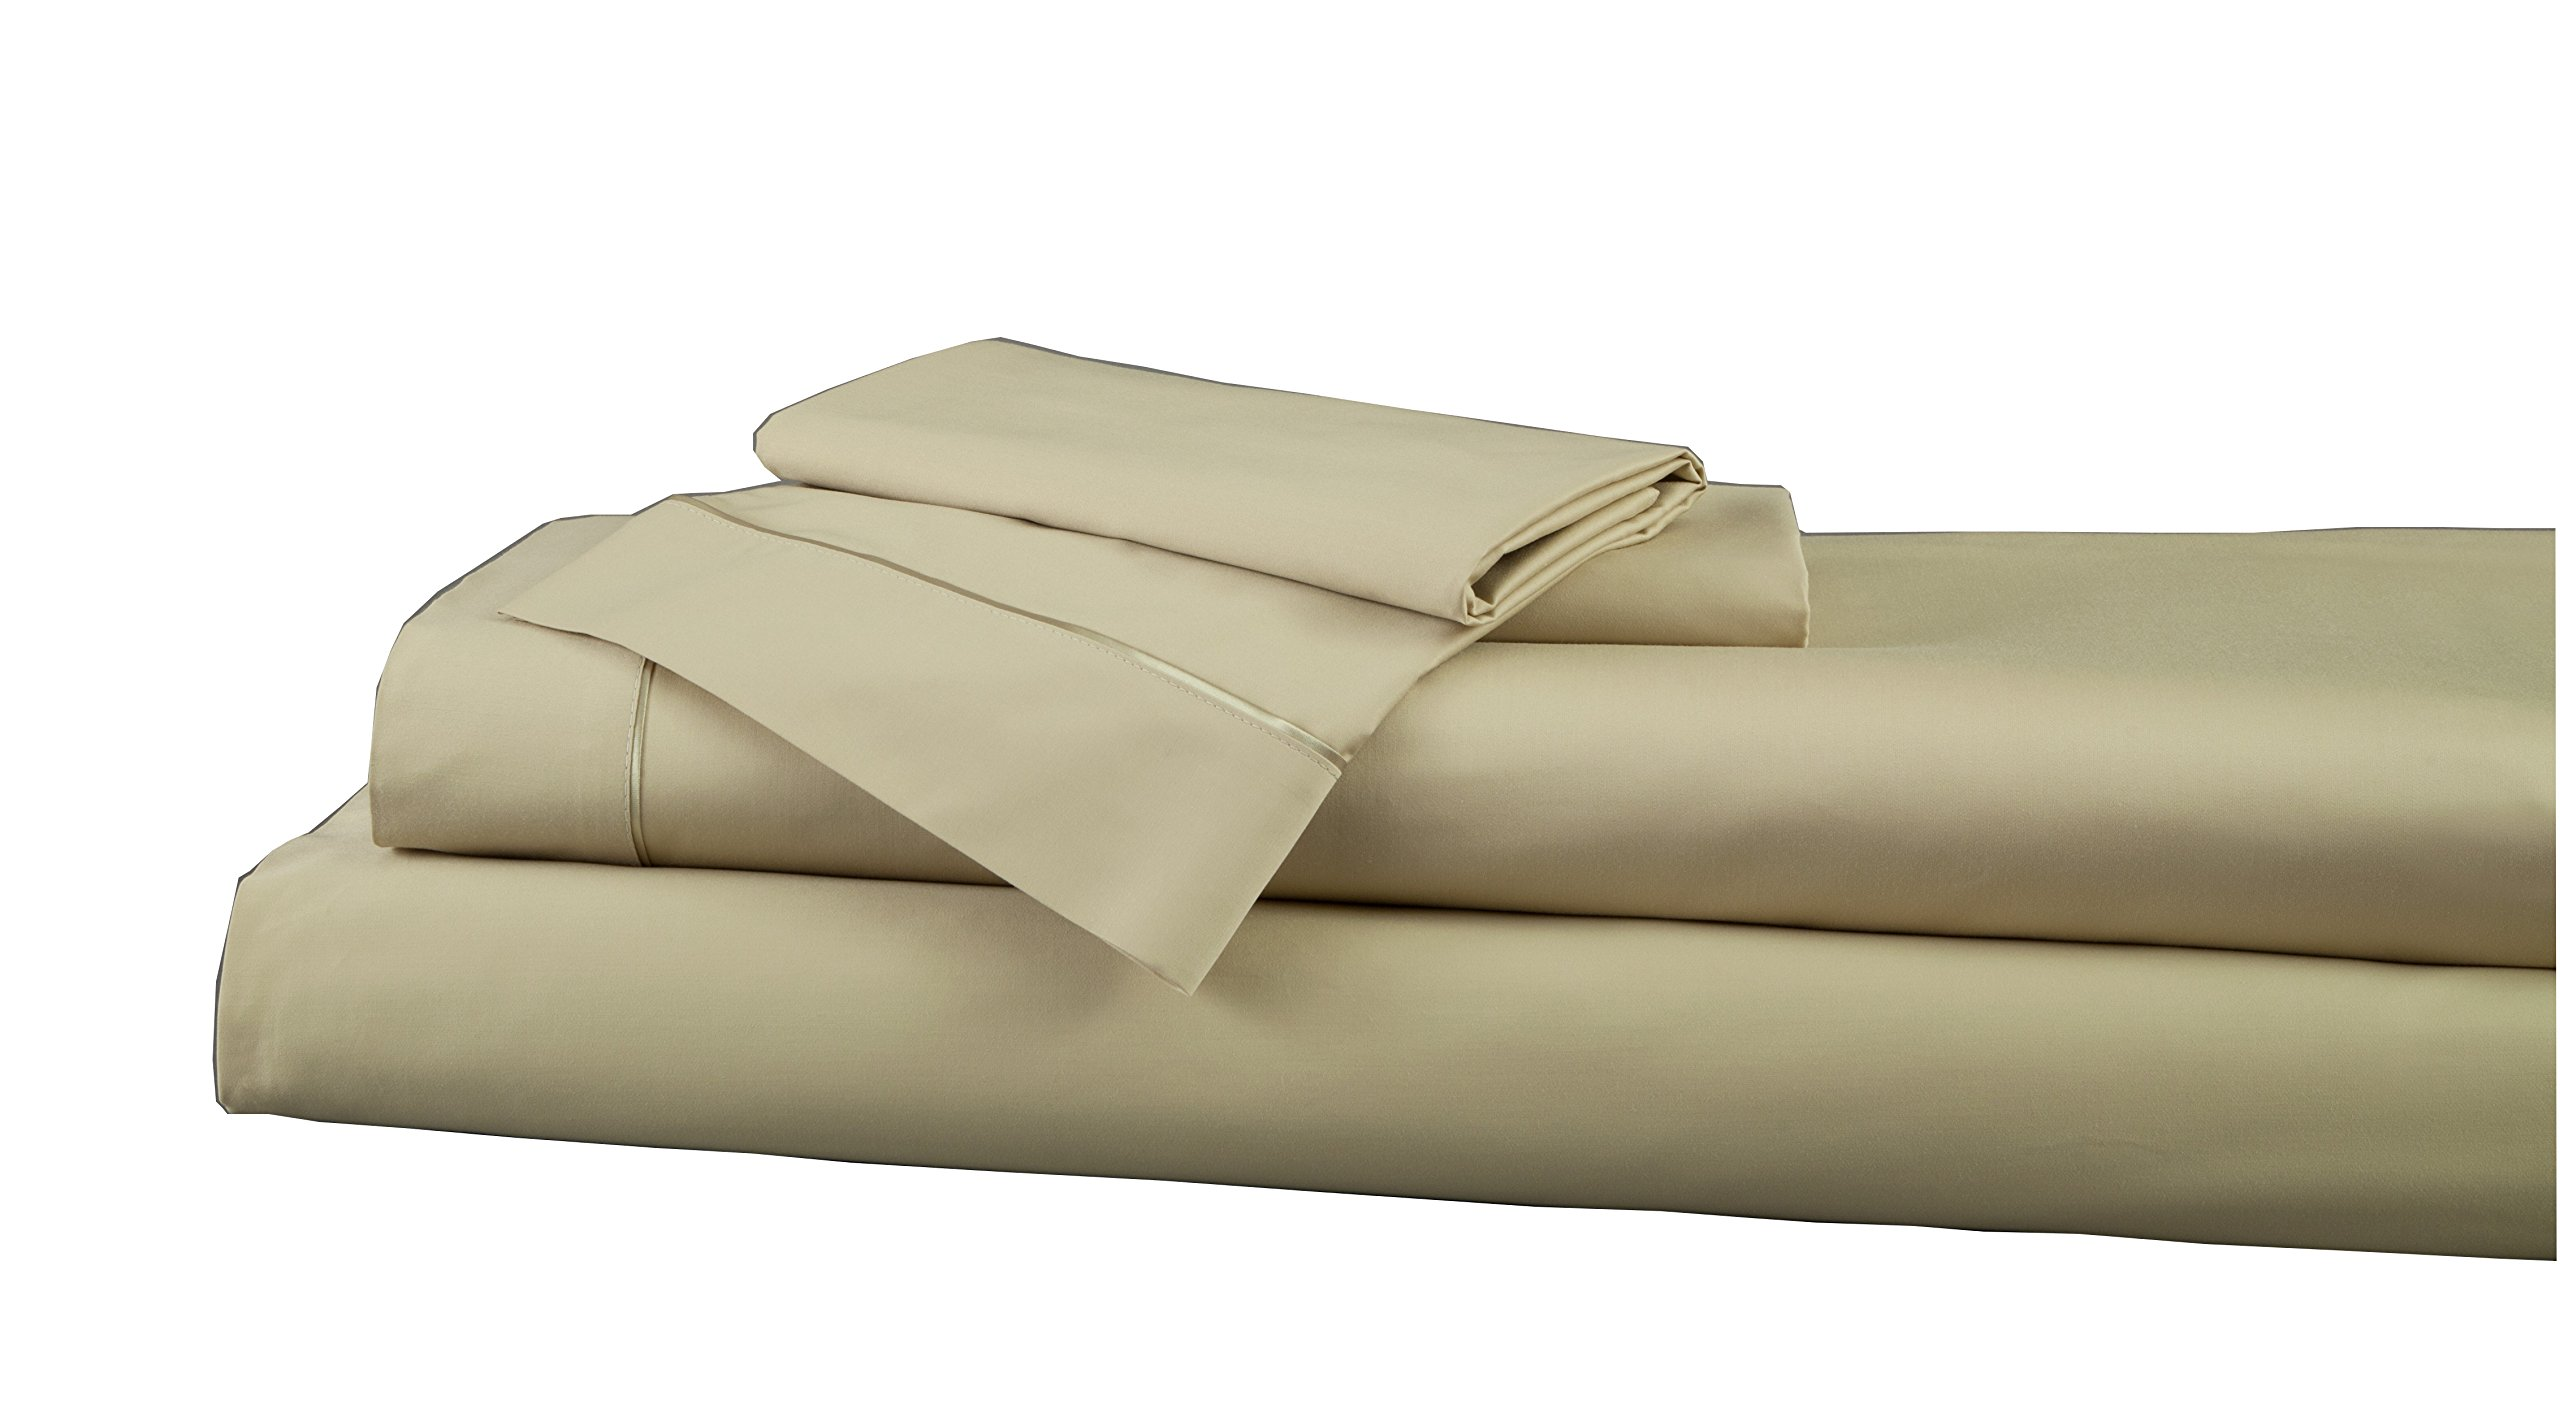 DreamFit Bamboo Rayon and Cotton Sheet Set - Queen - Pale Sage - 3030002 52 4Q by DreamFit